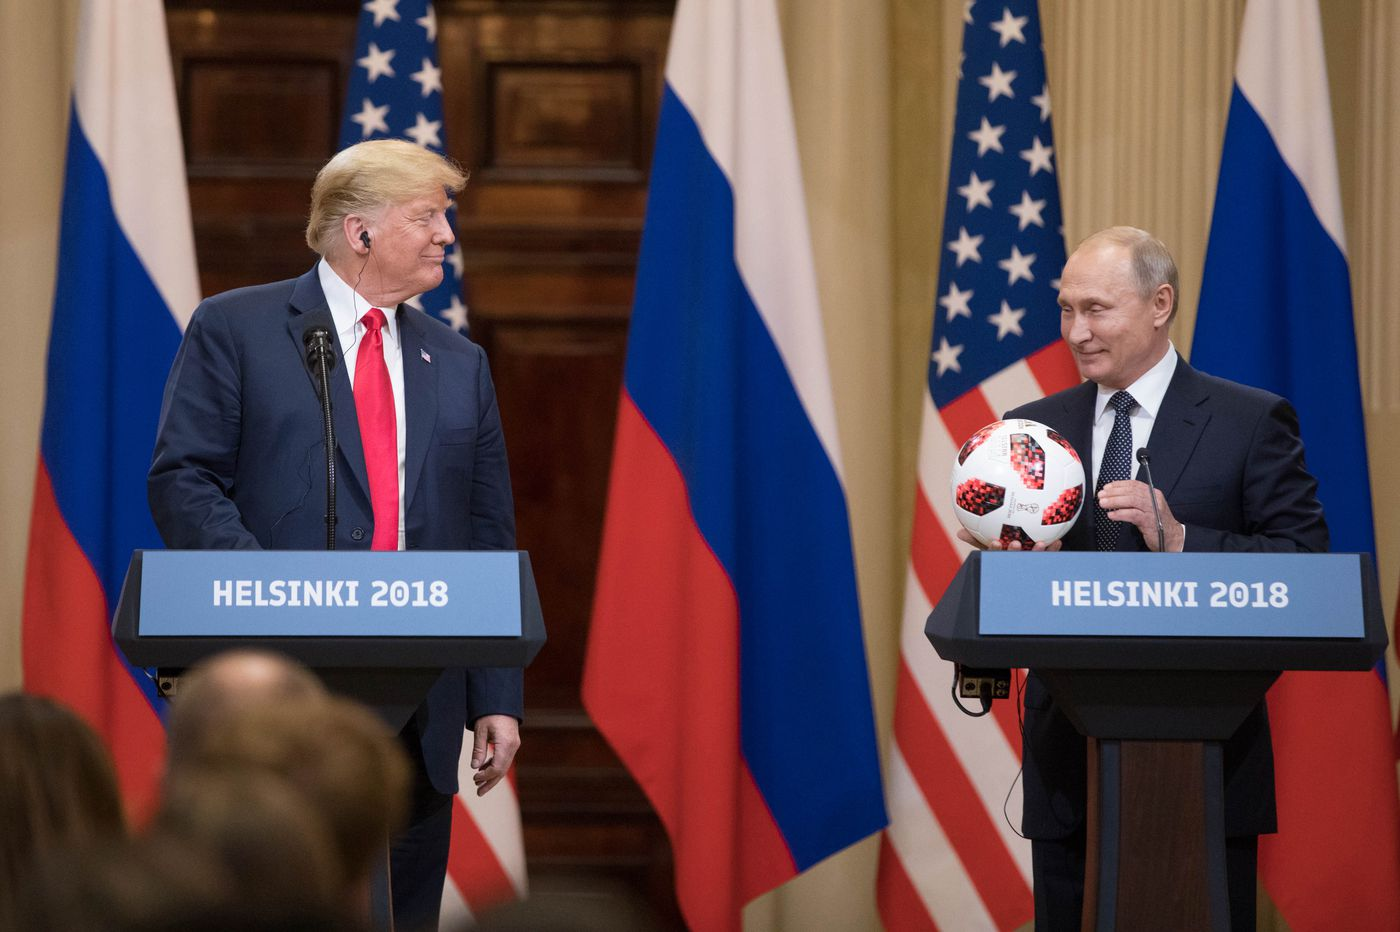 Trump has concealed details of his face-to-face encounters with Putin from senior officials in administration